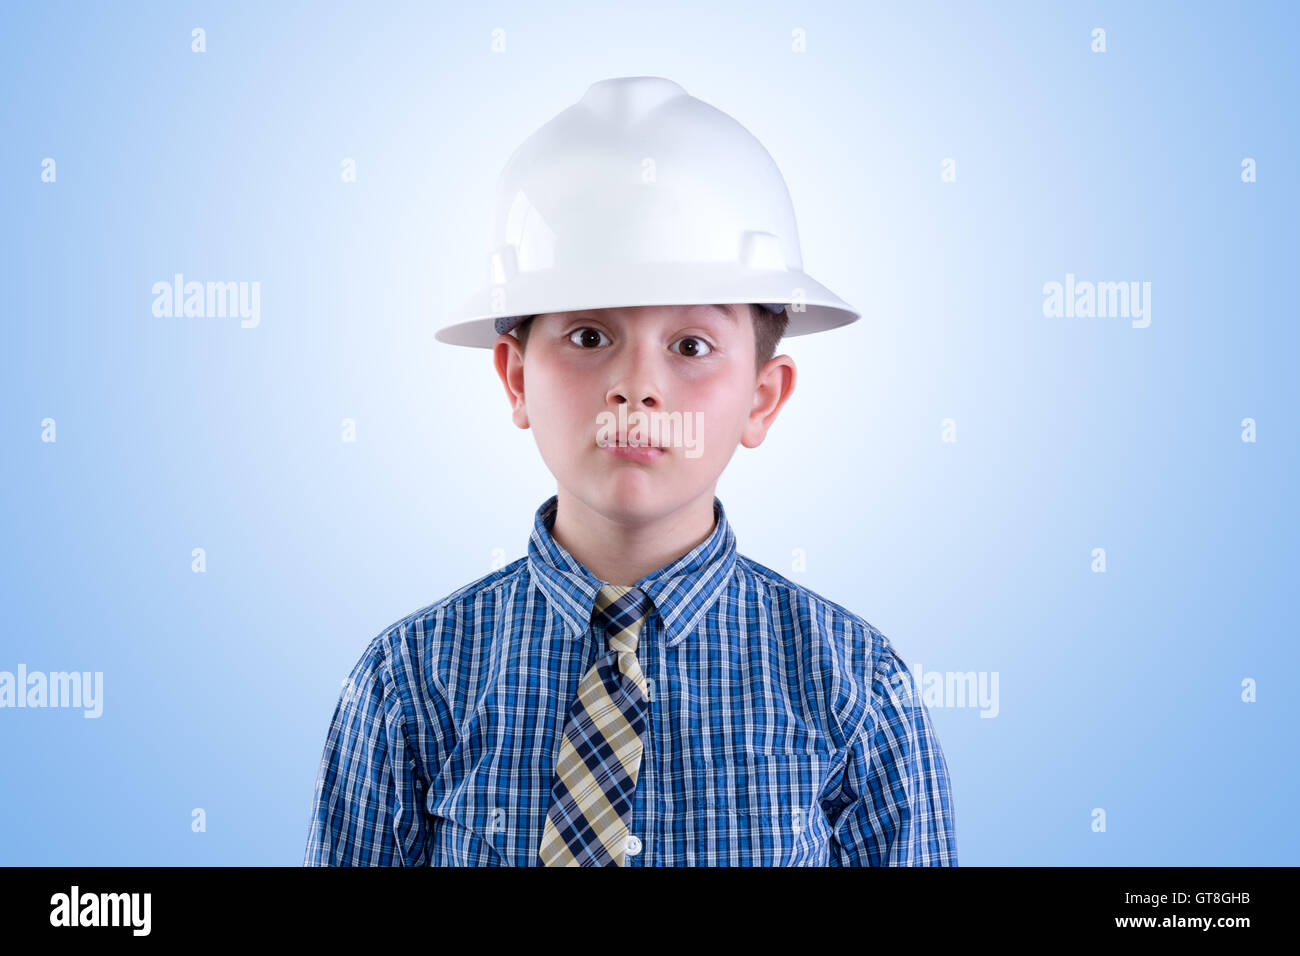 eb666583b81c9 Aspiring young tween boy dreaming of becoming an engineer in hardhat and  necktie with a whimsical expression - I am going to be